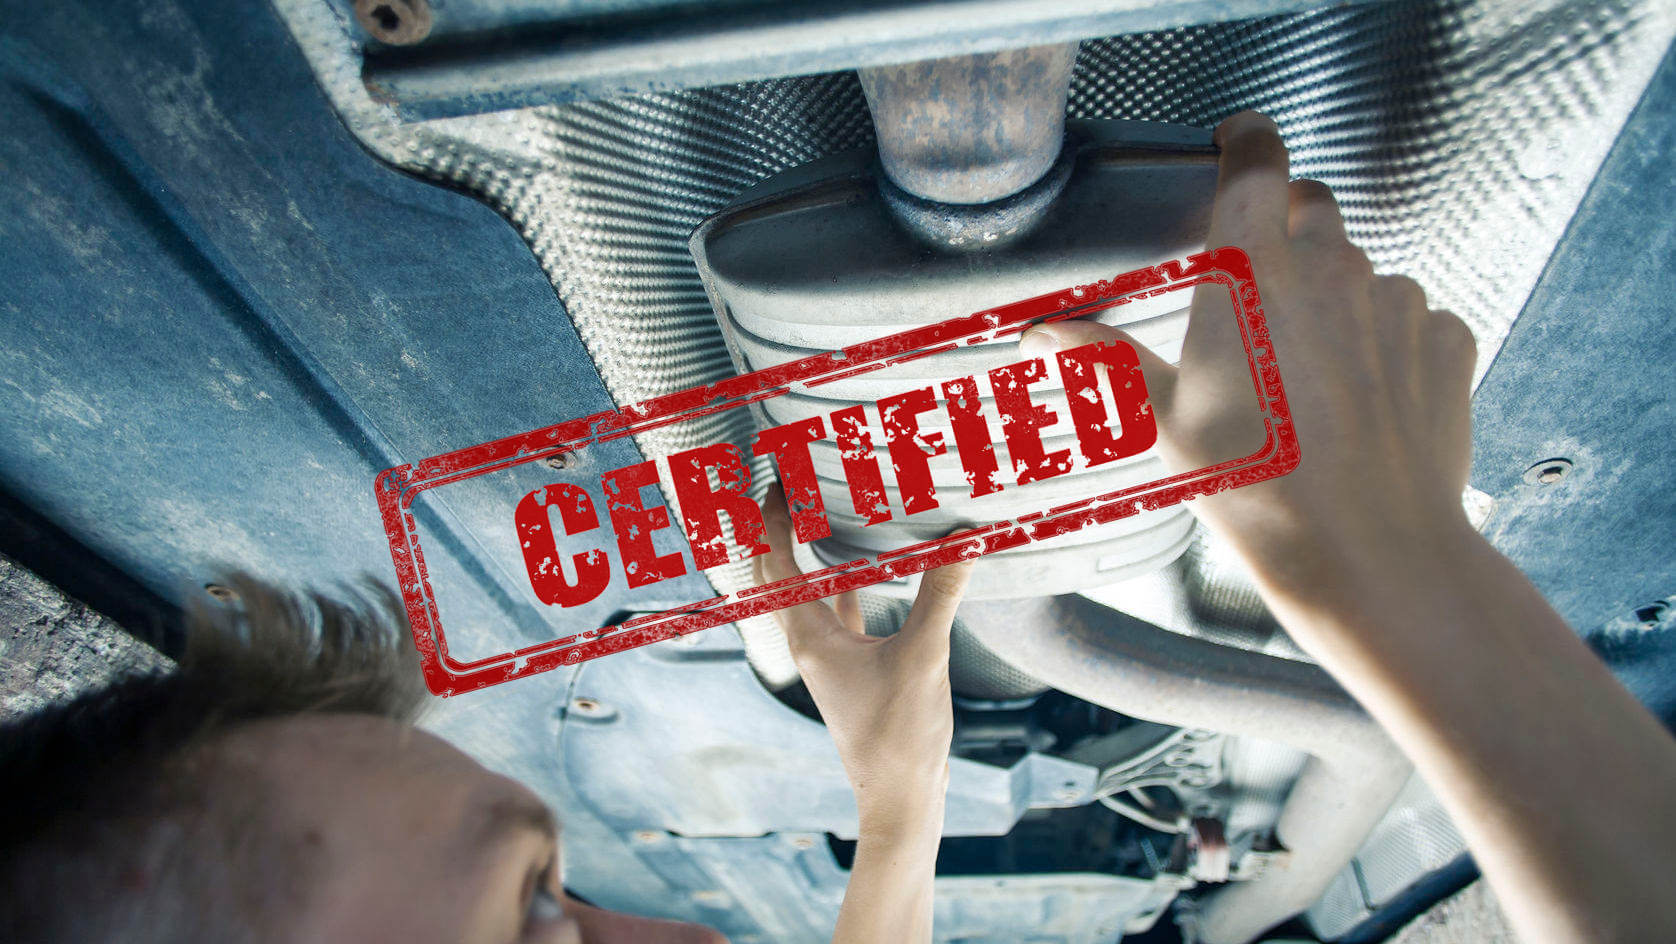 Auto-mechanic-repair-certified